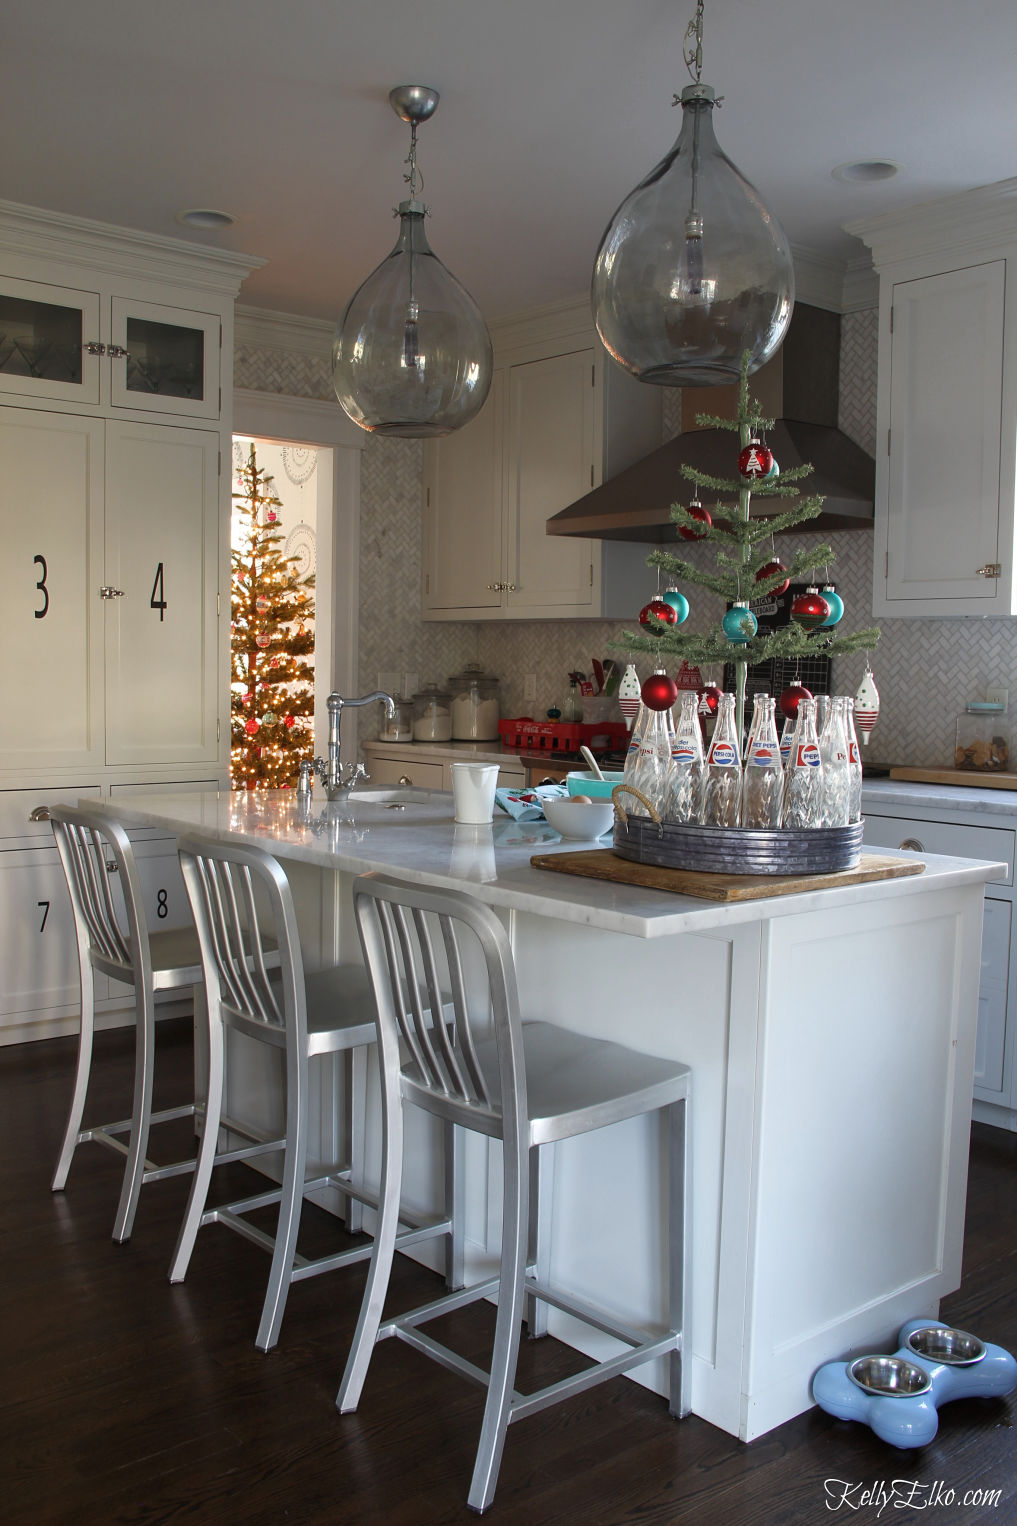 Beautiful white kitchen decorated for Christmas - love the demijohn lights kellyelko.com #christmaskitchen #farmhousekitchen #christmastree #lighting #kitchenisland #christmasdecor #christmasdecorating